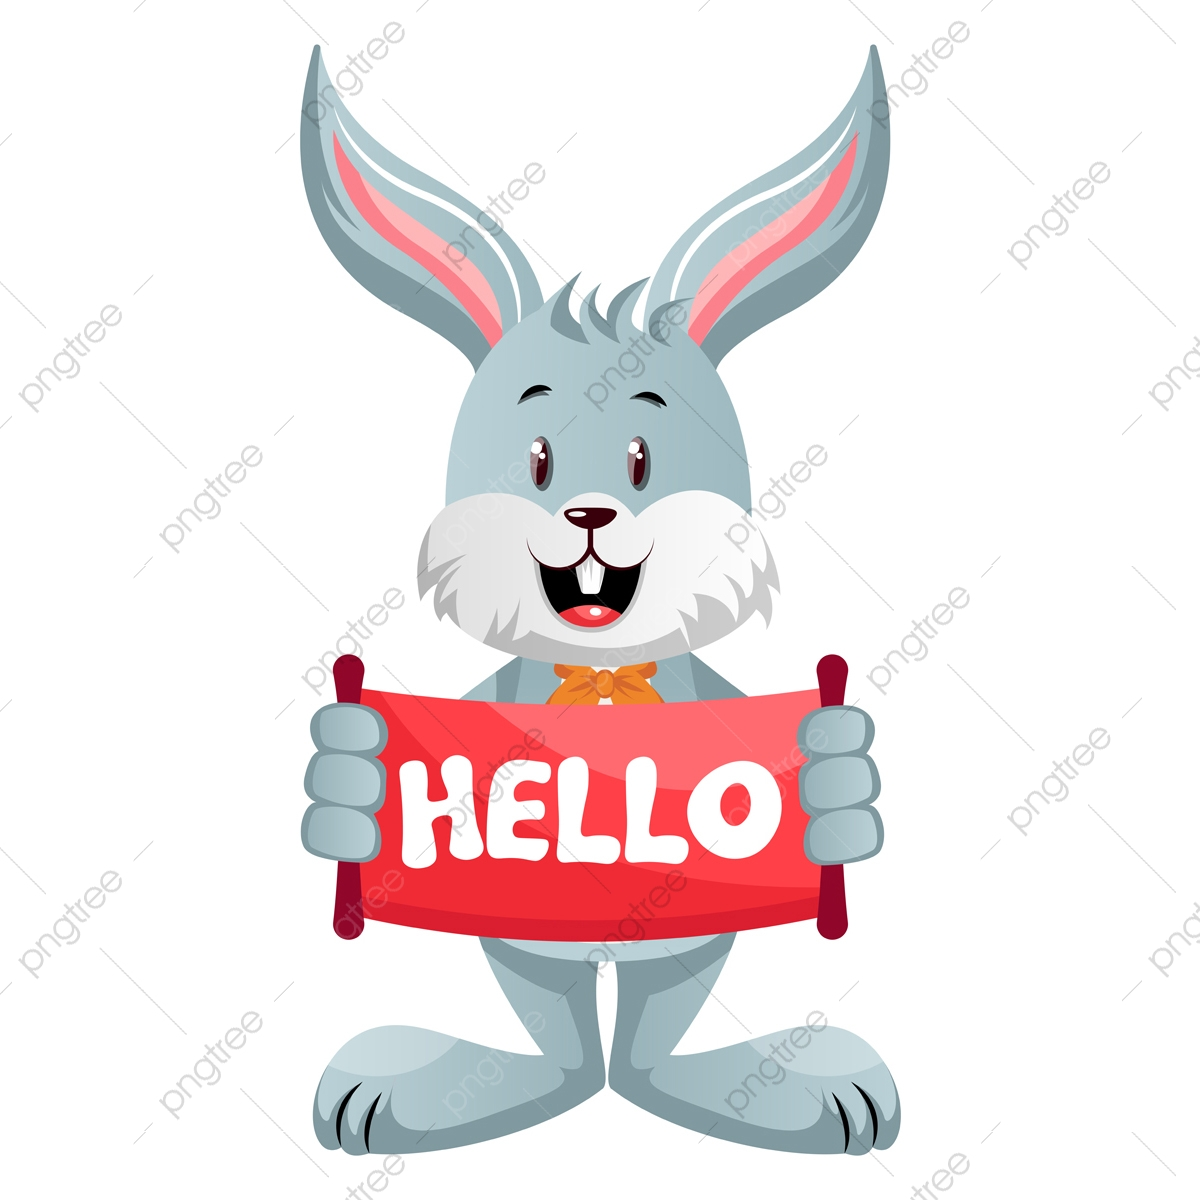 Bunny With Hello Sign Illustration Vector On White Background Illustration Cartoon Graphic Png And Vector With Transparent Background For Free Download